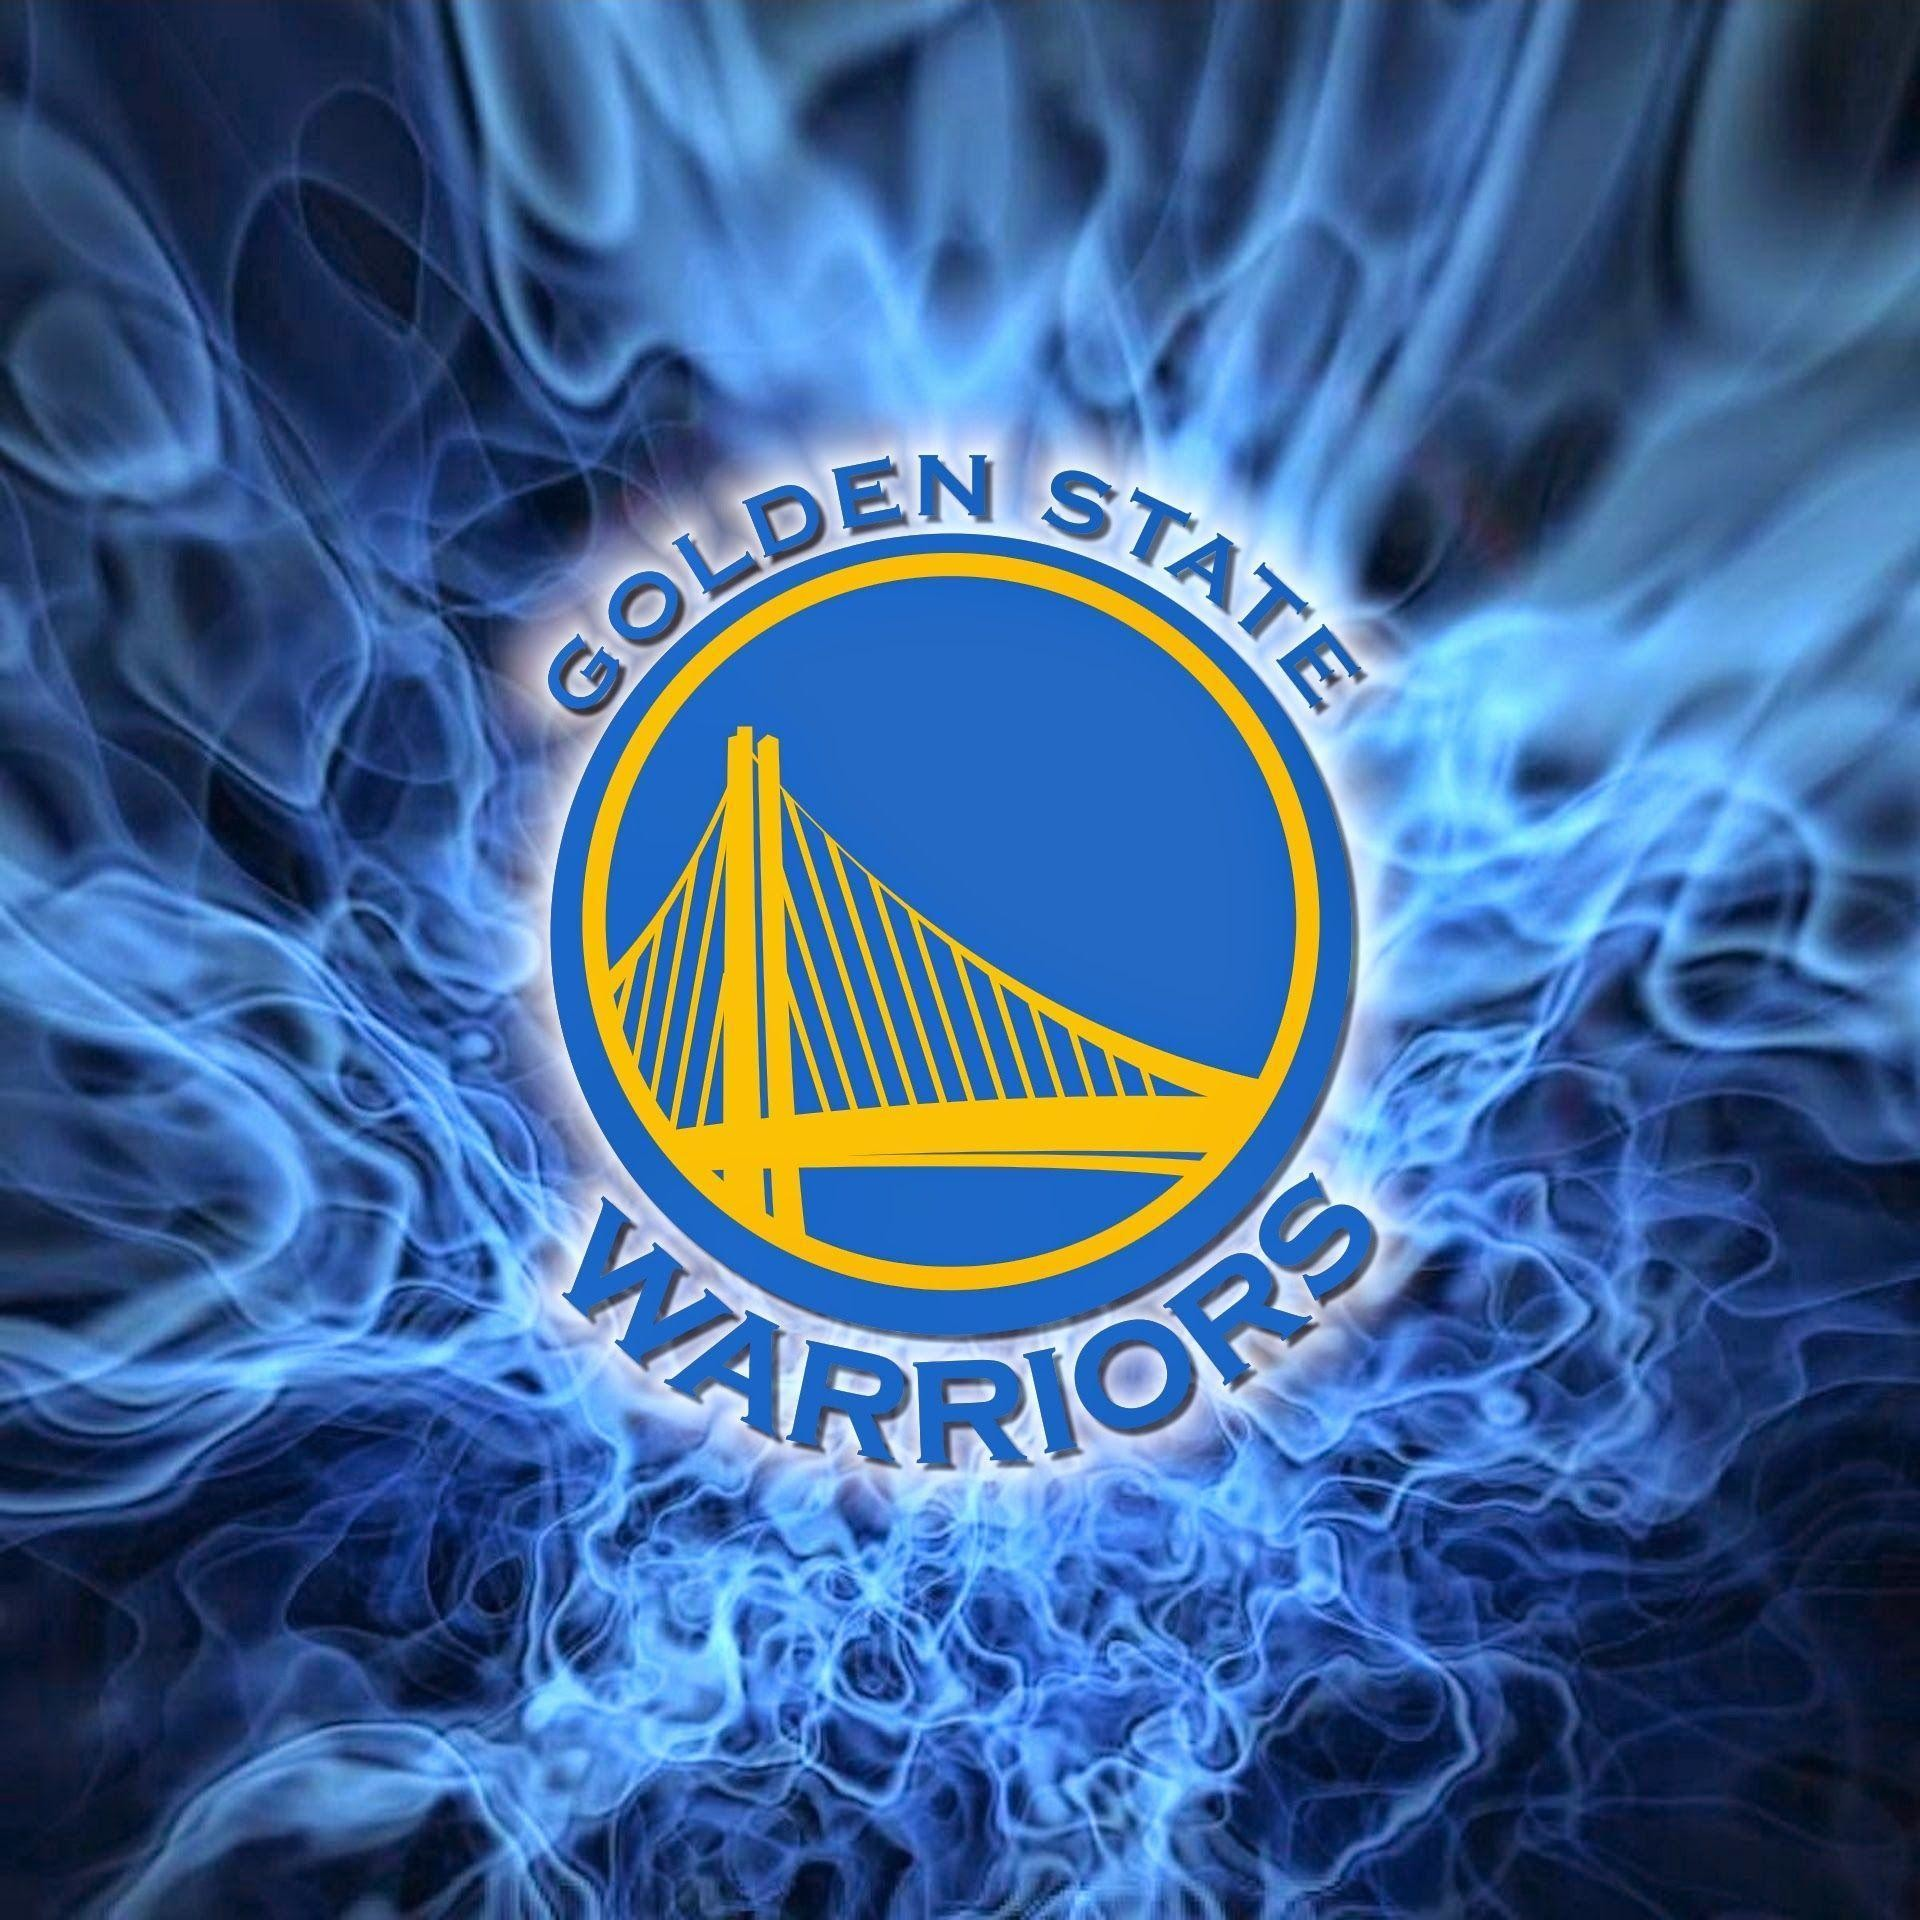 Basketball Iphone Wallpapers: Golden State Warriors IPhone Wallpaper (71+ Images